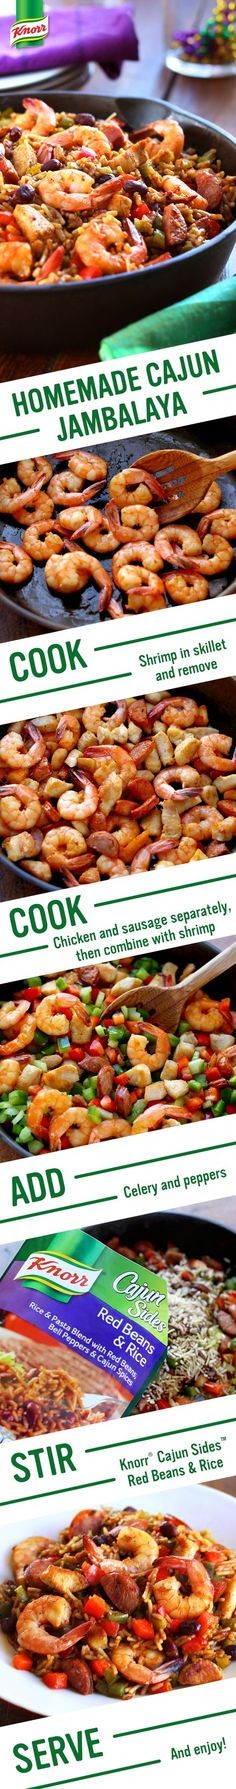 The taste of The Big Easy has never been this simple --or delicious! Knorr's Homemade Cajun Jambalaya celebrates New Orleans' flavor. Make this Louisiana style treat for dinner tonight --less than half an hour from prep to plate! 1. Cook shrimp & set aside 2. Cook chicken & sausage. Combine with shrimp 3. Add celery & peppers 4. Stir in Knorr Cajun Sides - Red Beans & Rice. Serve & let the good times roll!